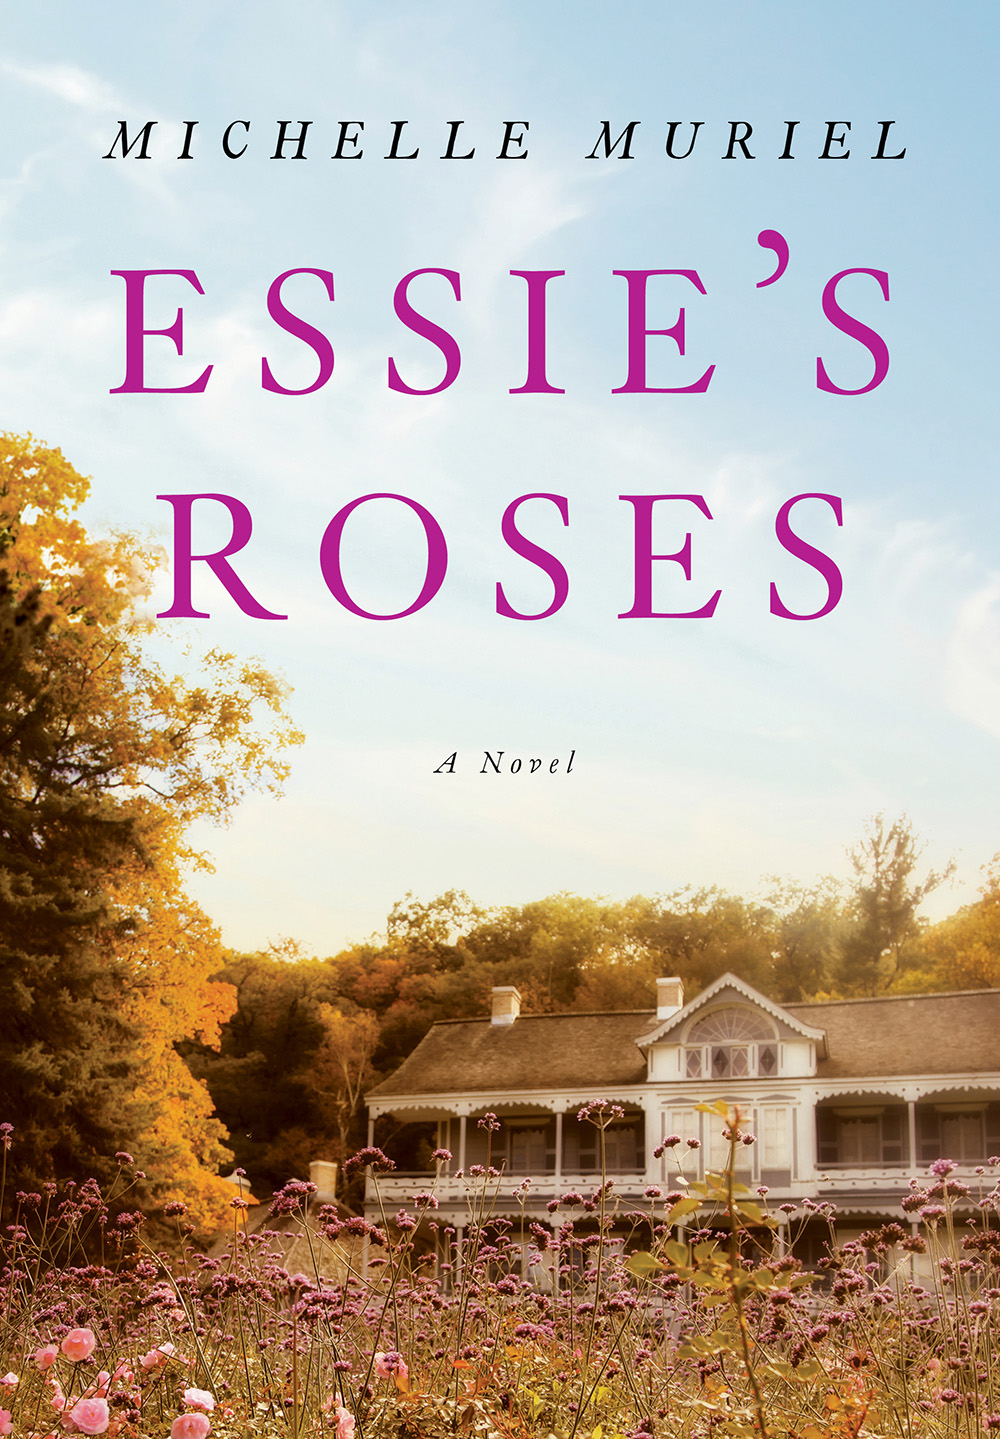 Essie's Roses is a heartwarming historical novel set before the Civil War about secrets, love, freedom and the power of a dream #1 Amazon Kindle bestseller Also available in print www.MichelleMuriel.com